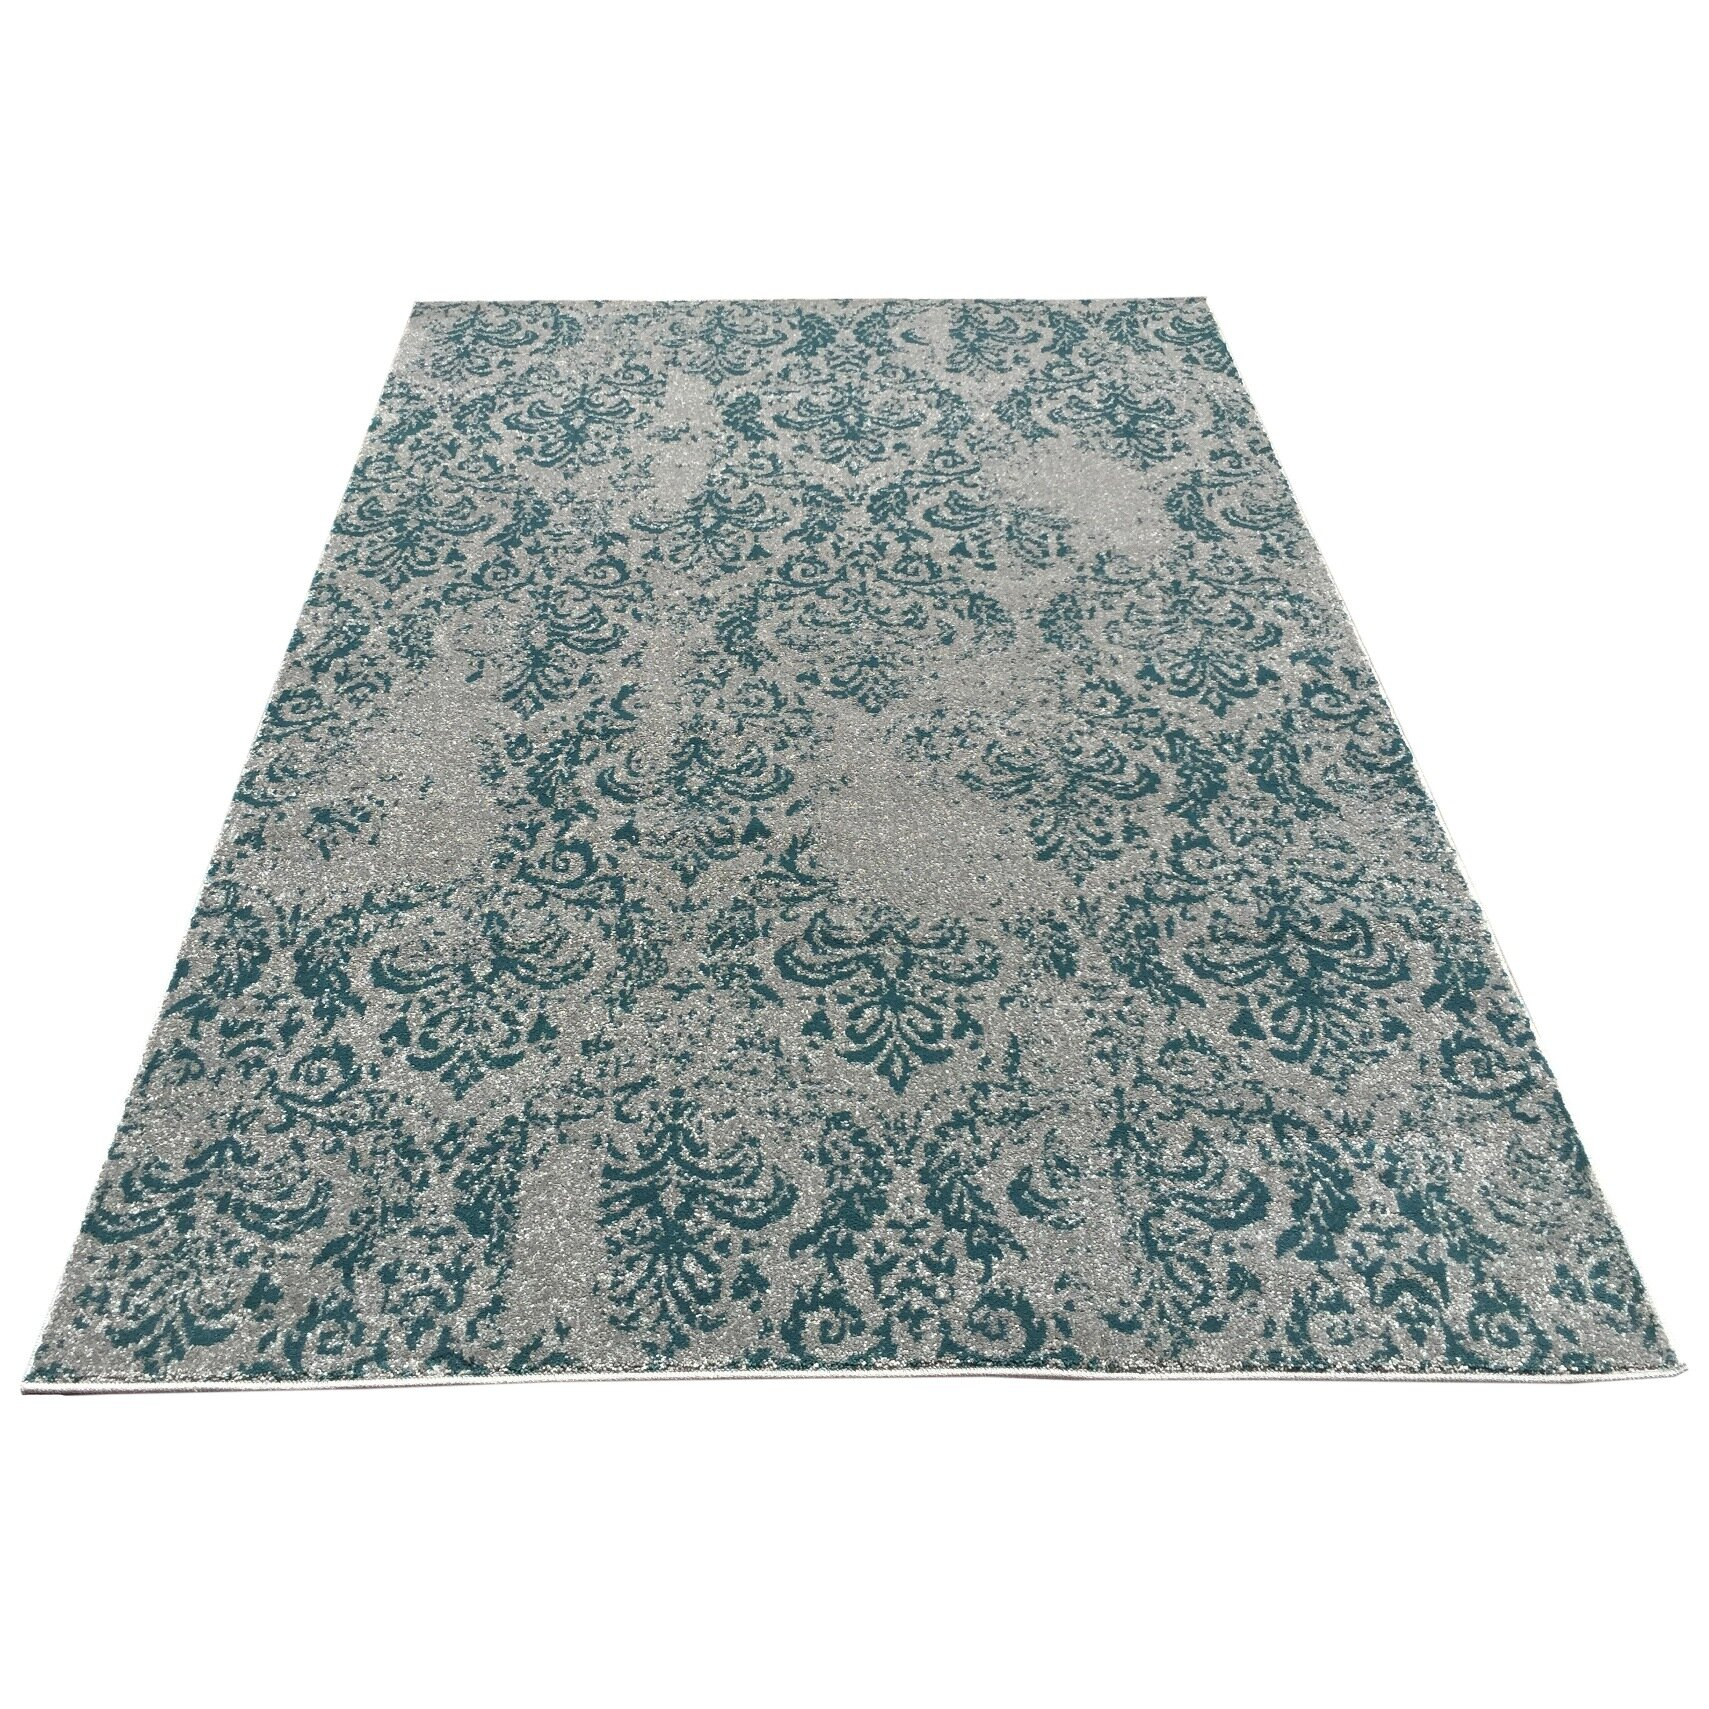 Rugnur Zahra Teal/Blue Indoor/Outdoor Area Rug